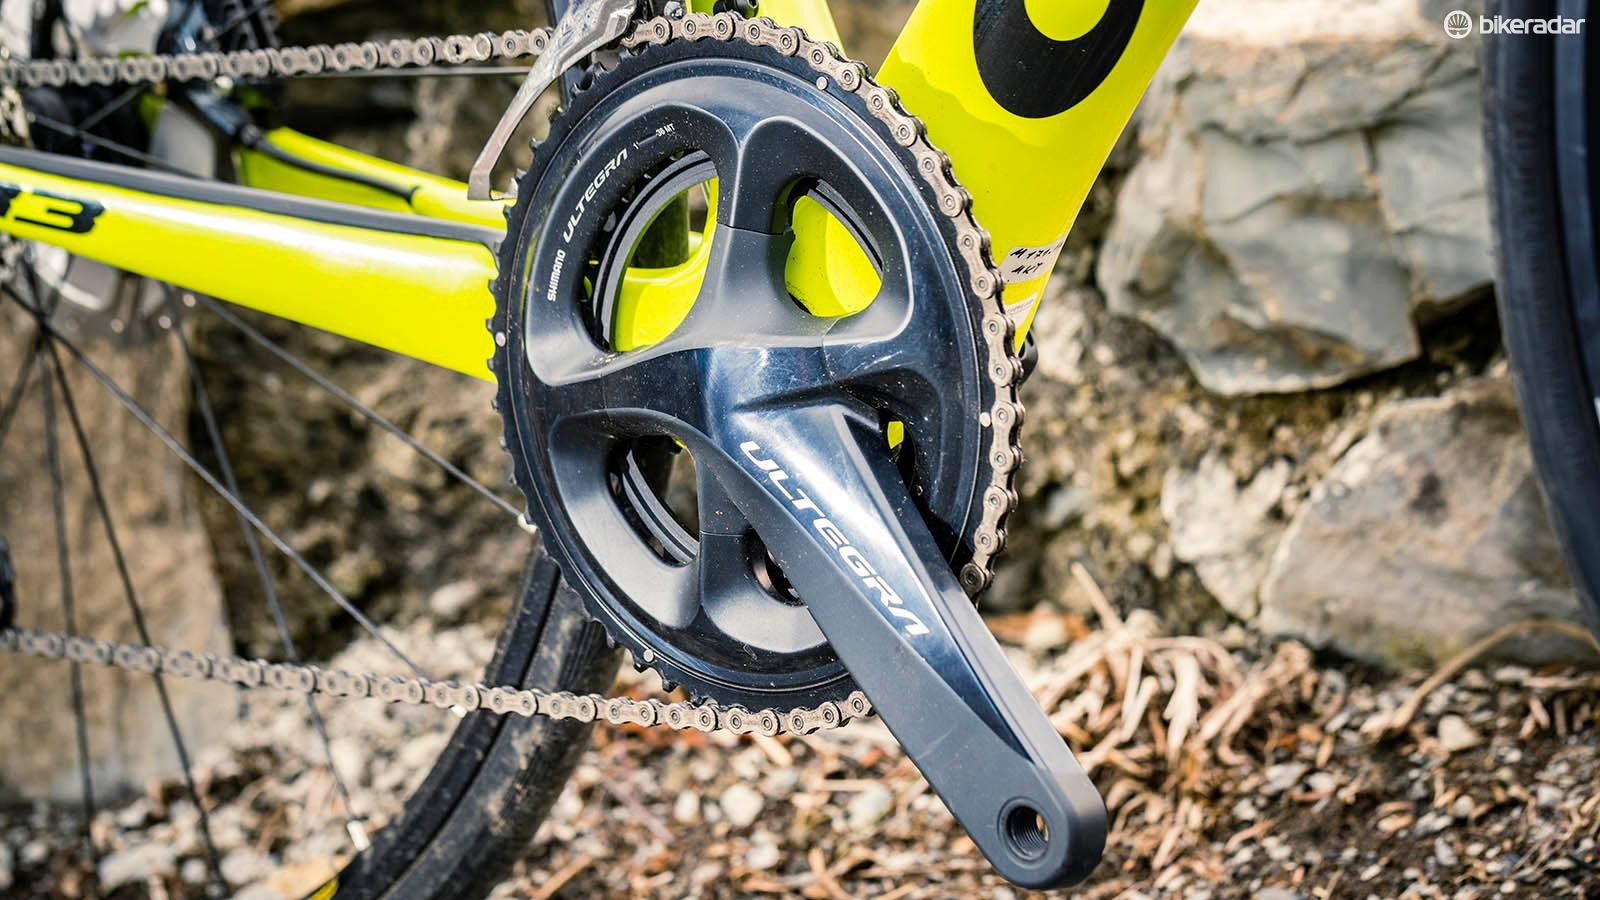 It's tough to find any fault in the new Ultegra drivetrain